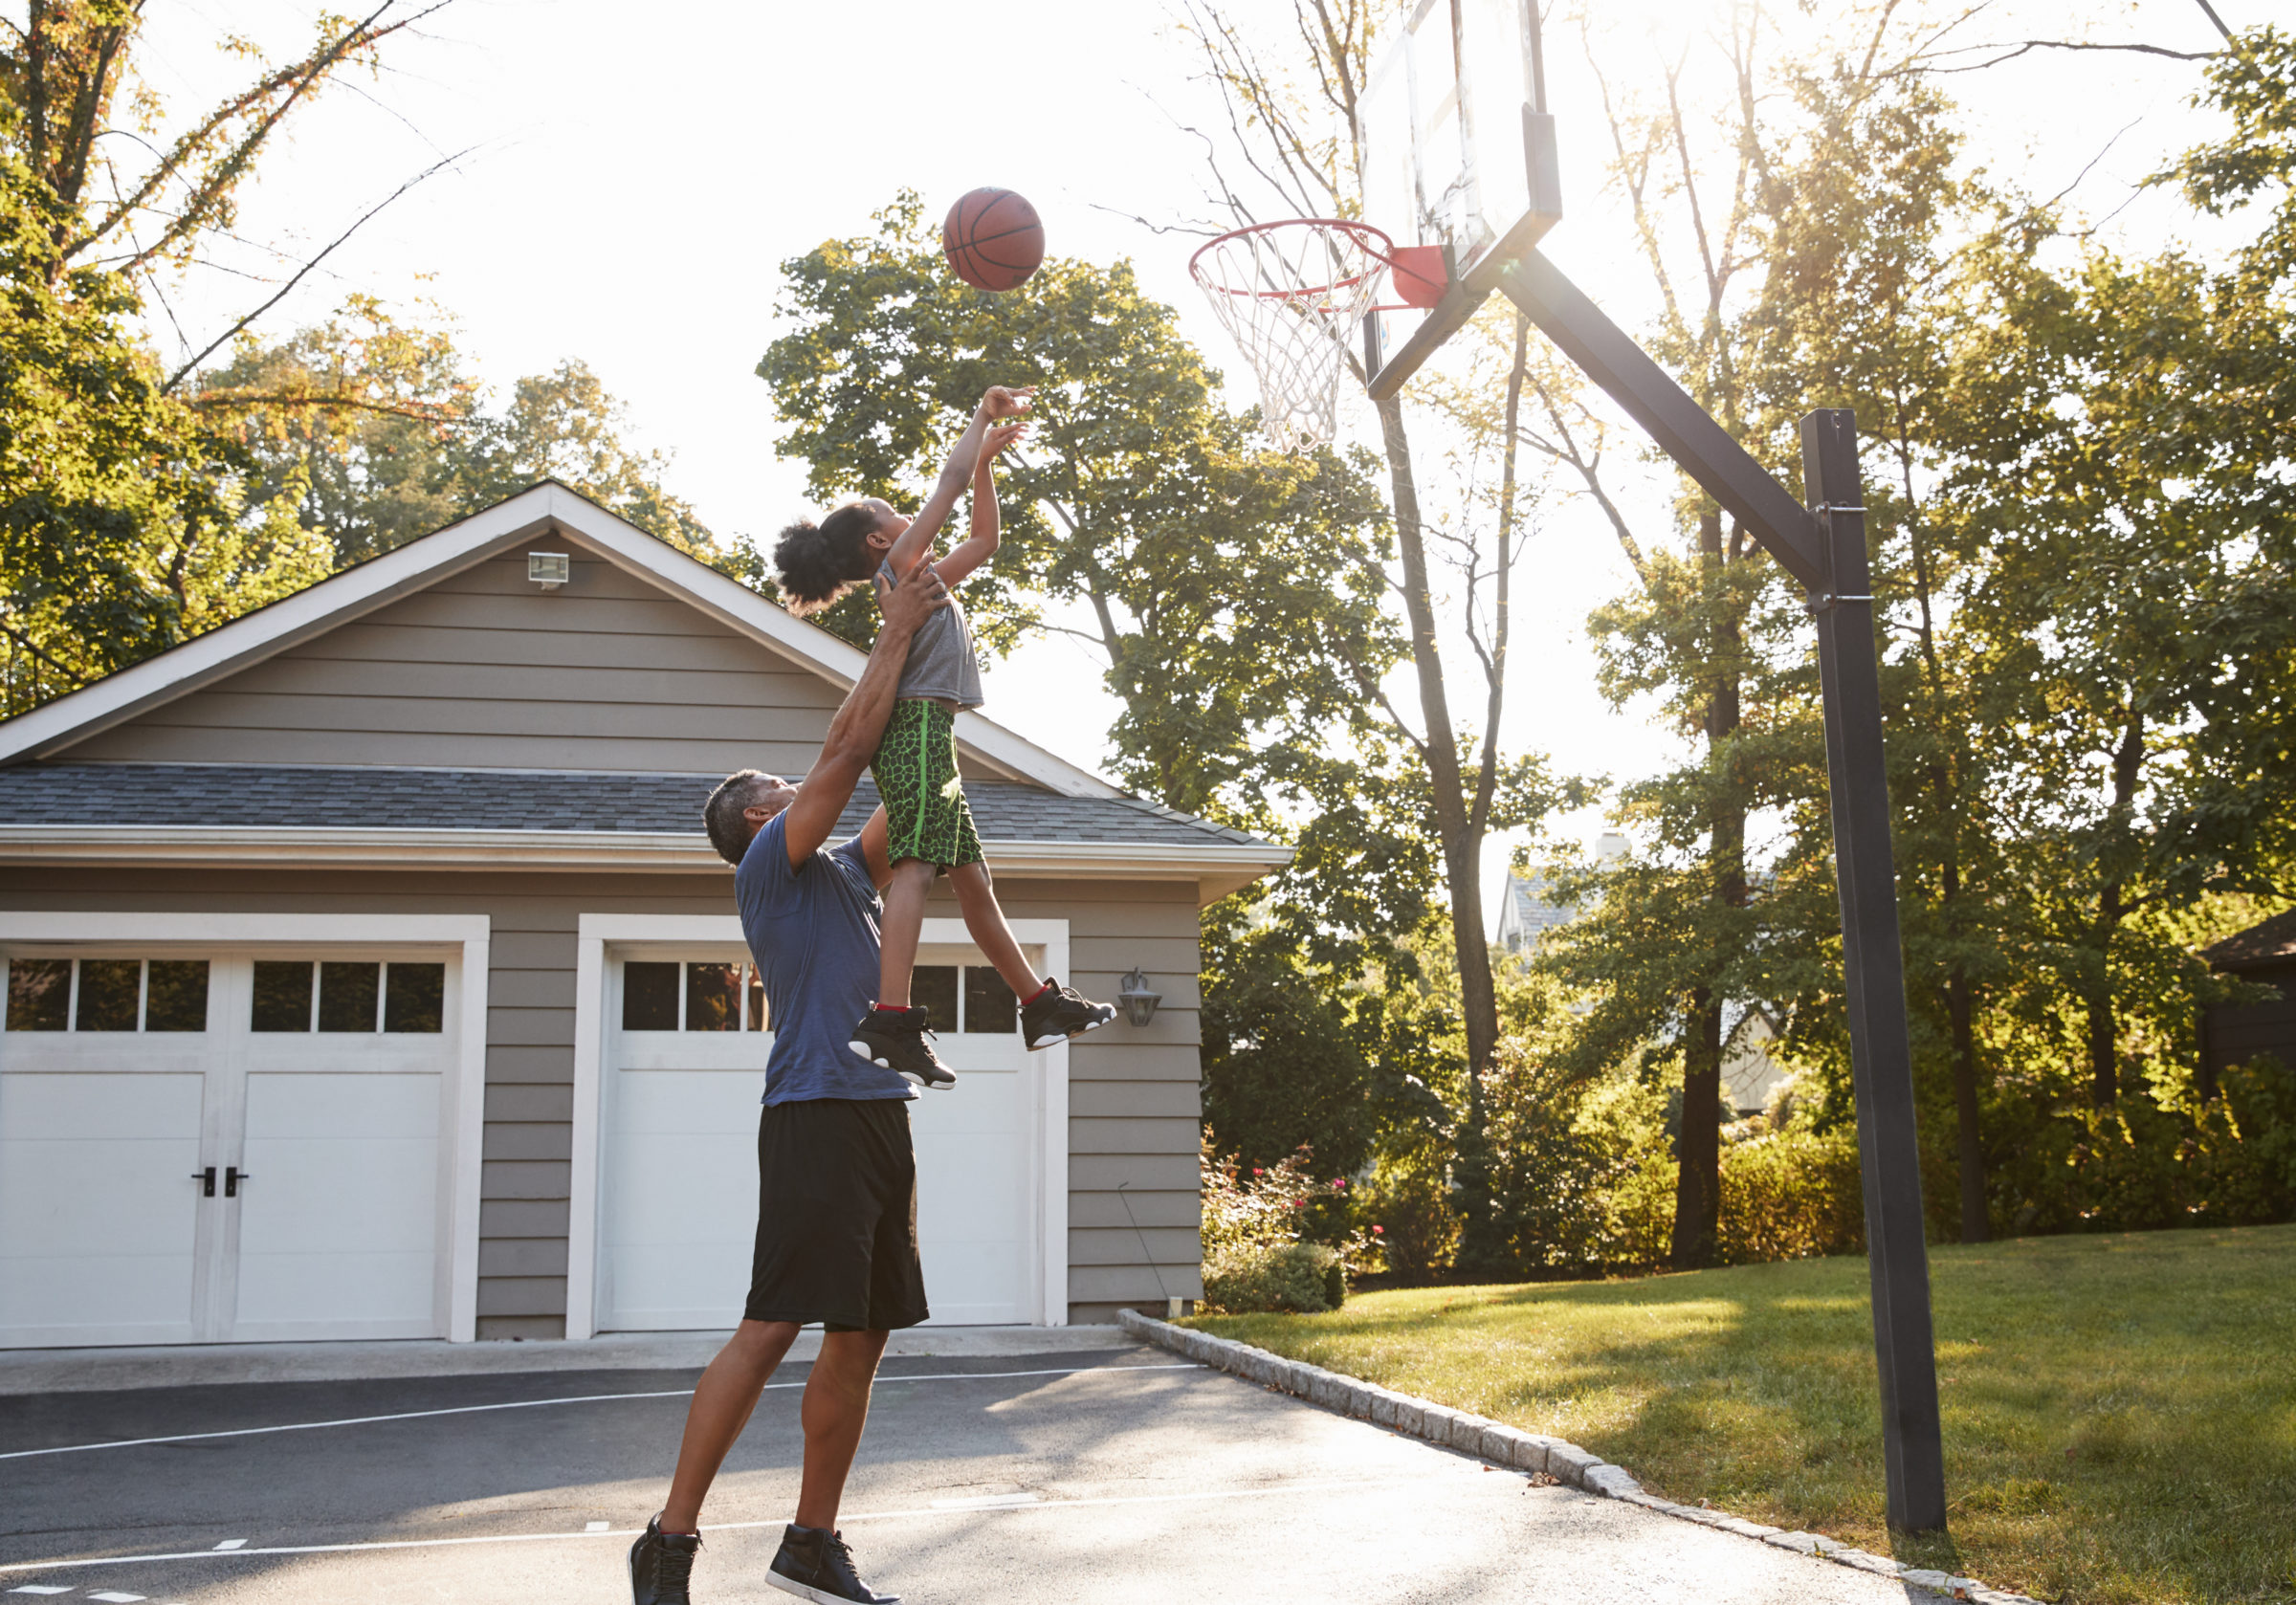 father and son playing basketball on driveway at h PYCK7GD